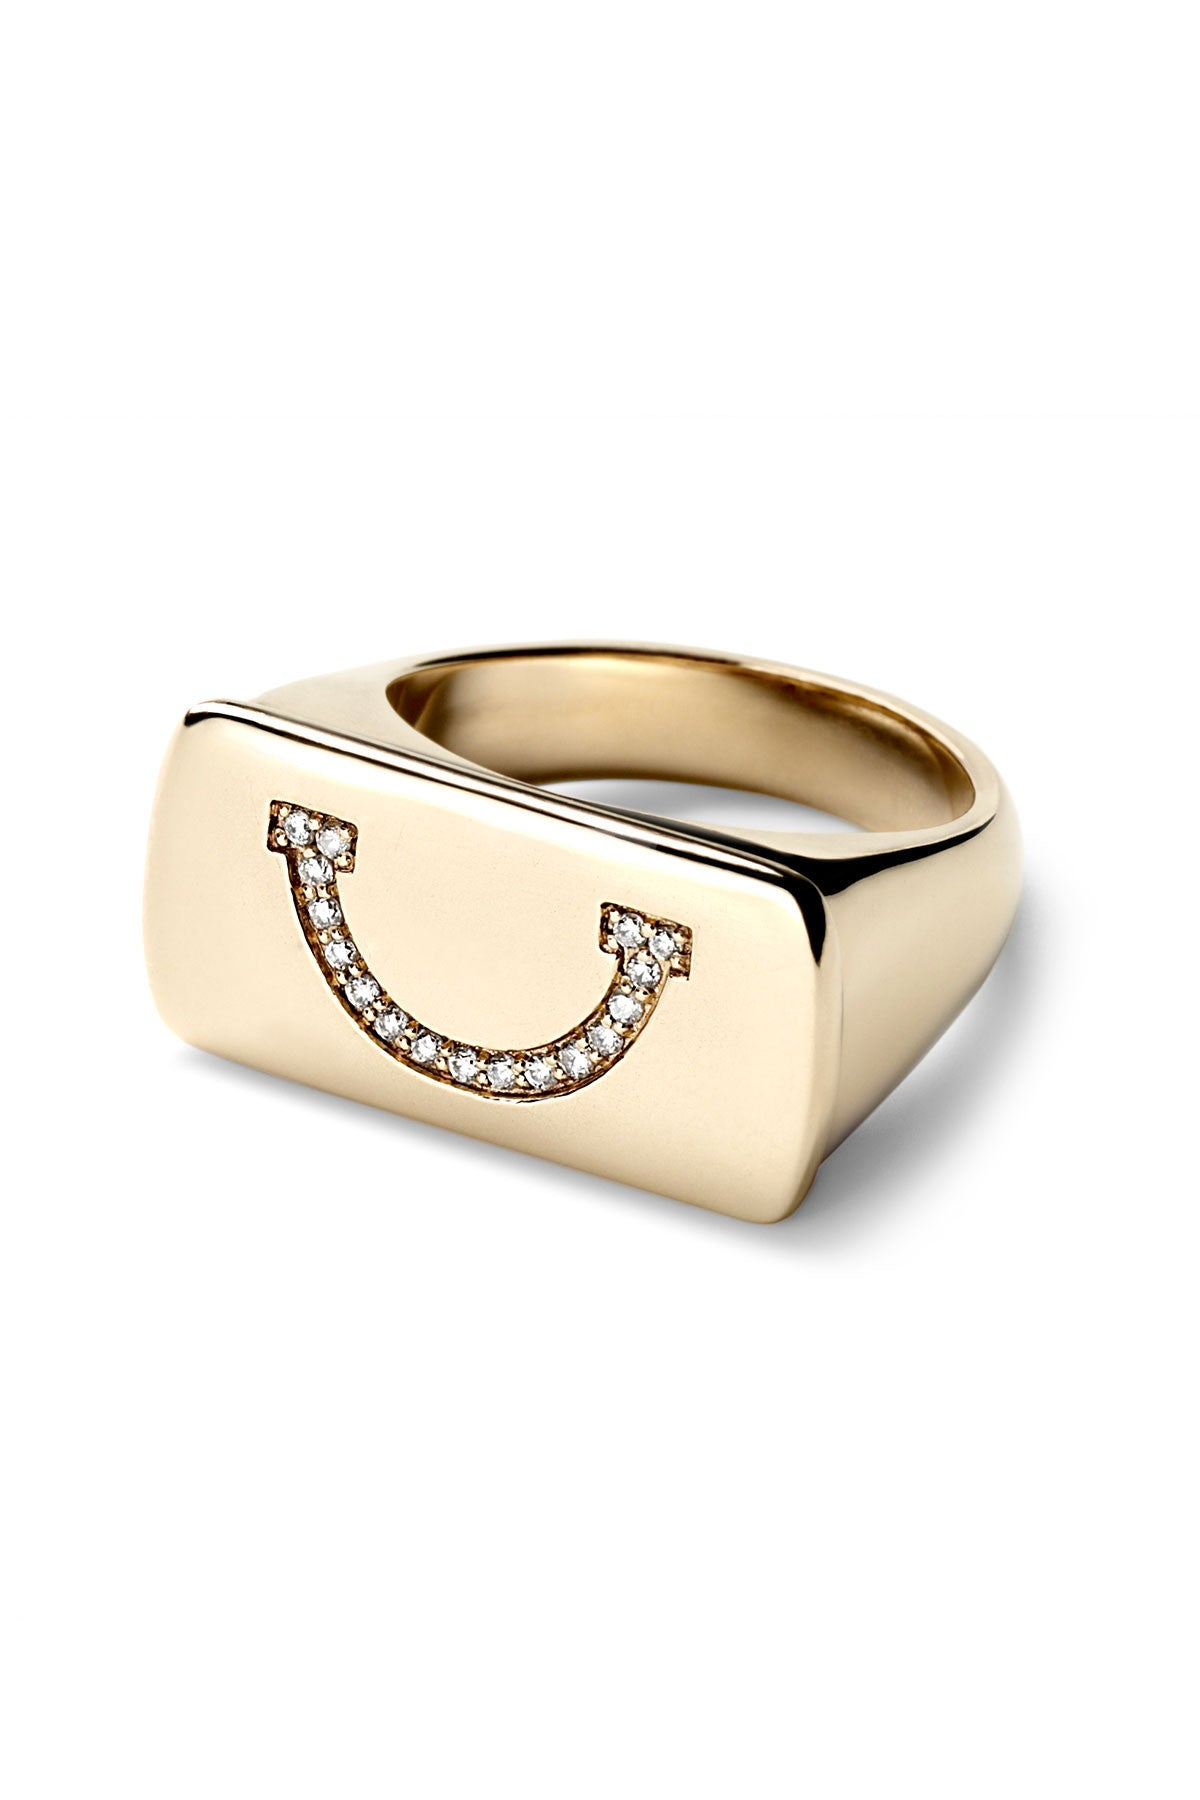 Turn That Frown Upside Down Bar Ring